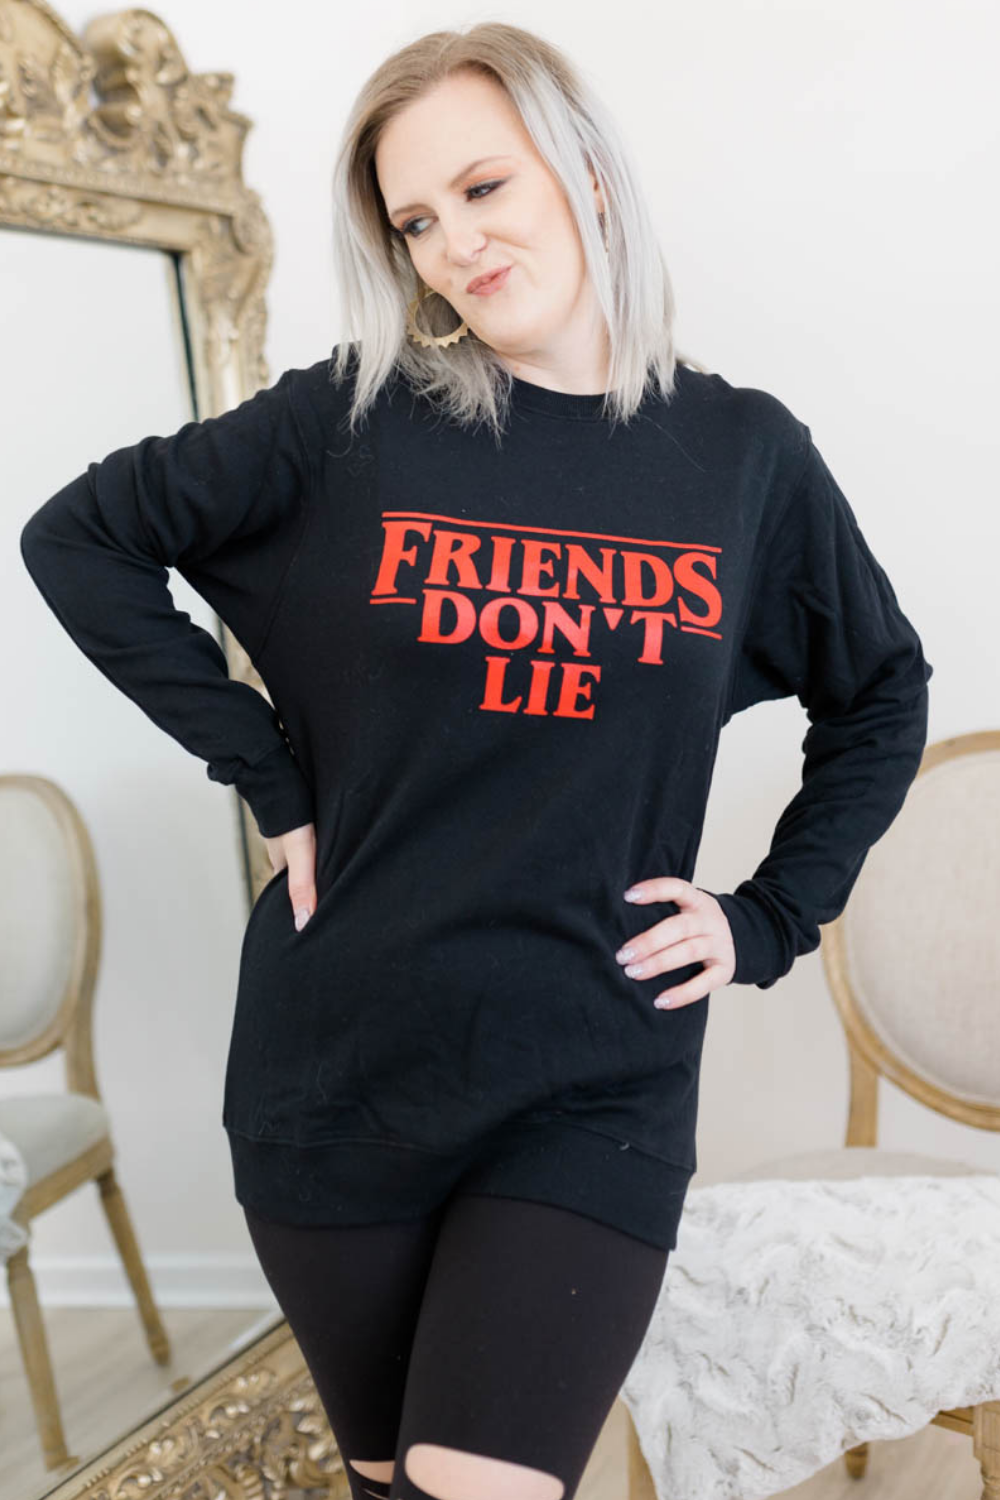 FRIENDS DONT LIE SWEATSHIRT